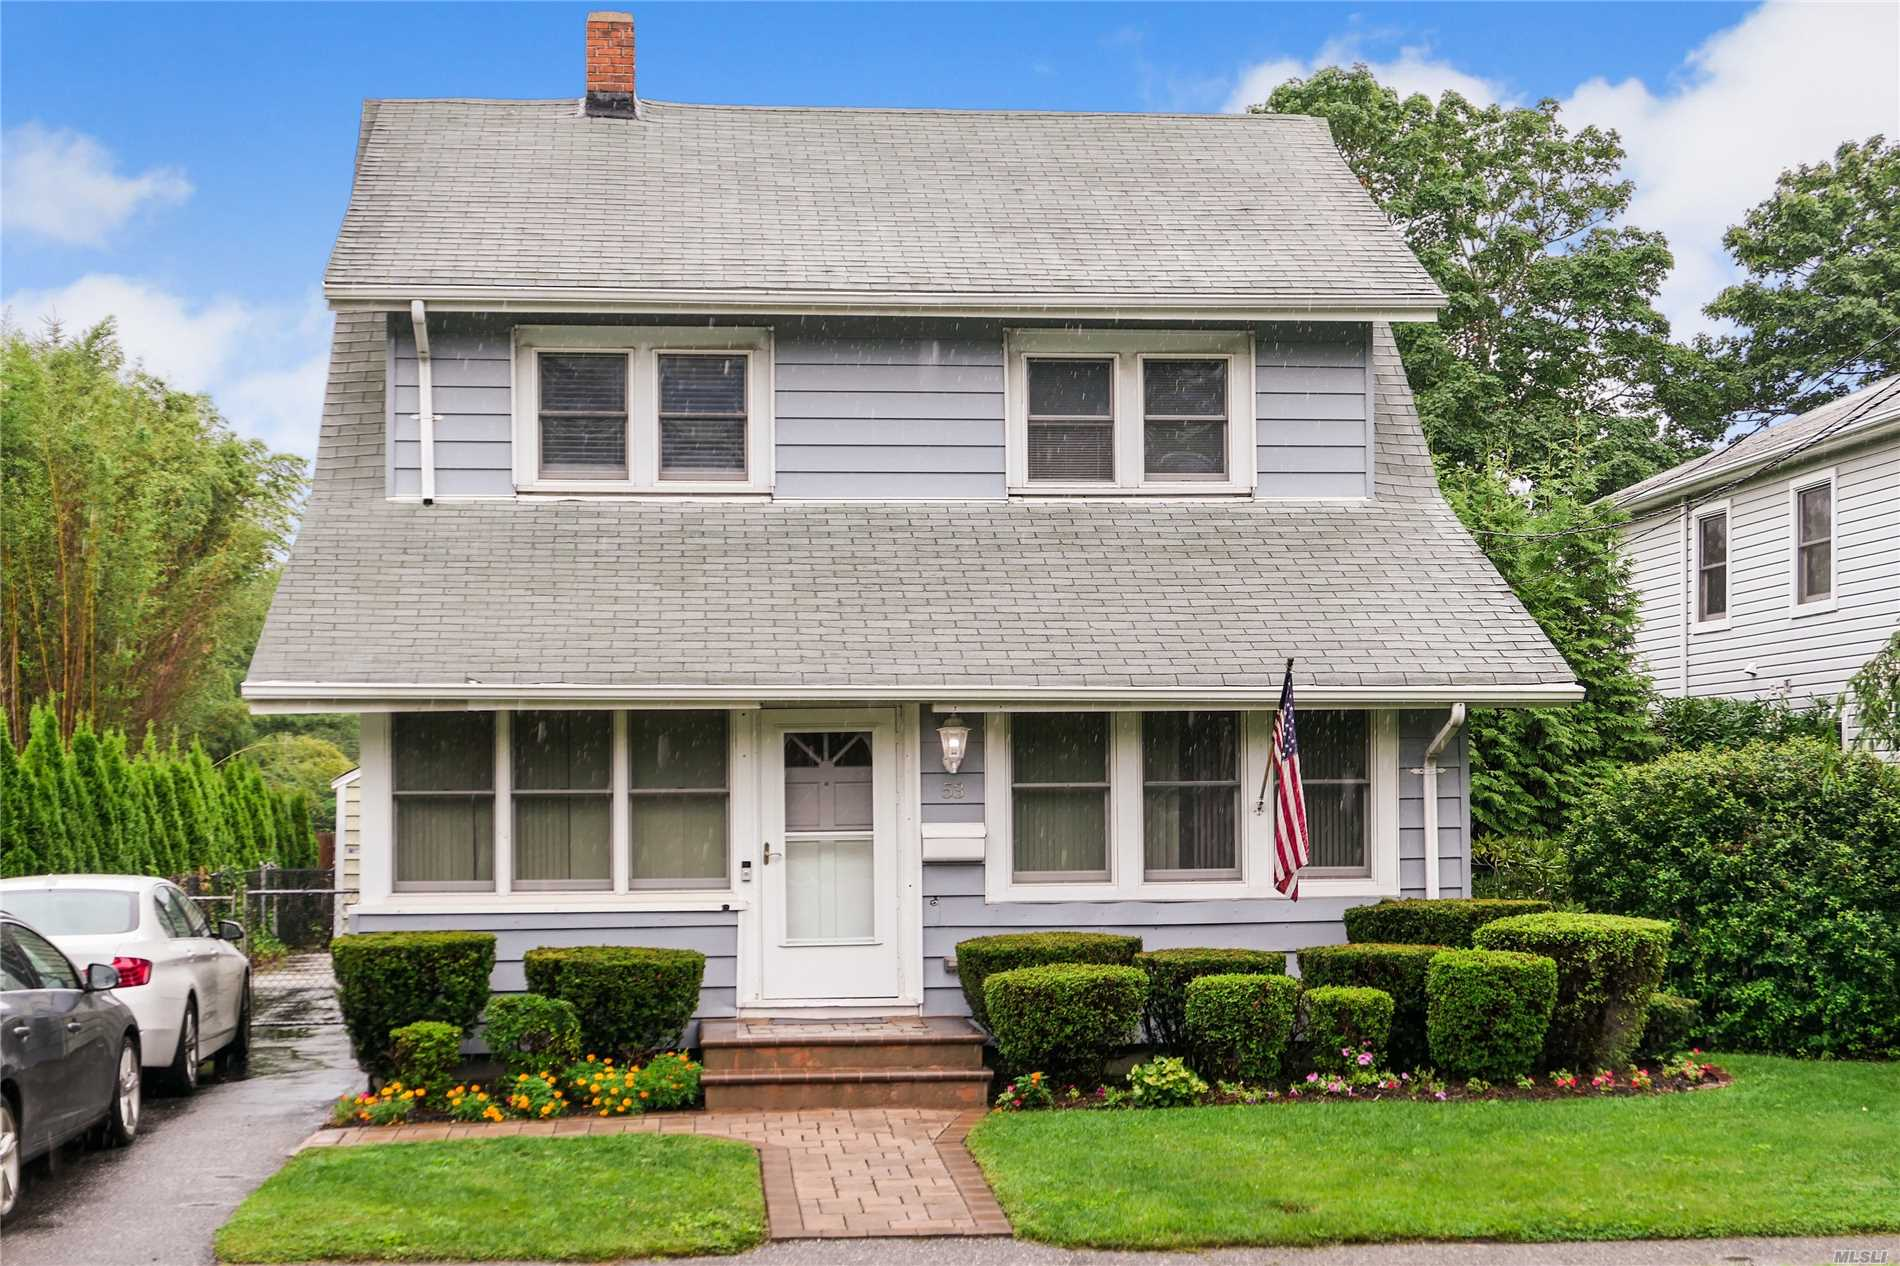 Photo of home for sale at 53 Station Rd, Bellport Village NY